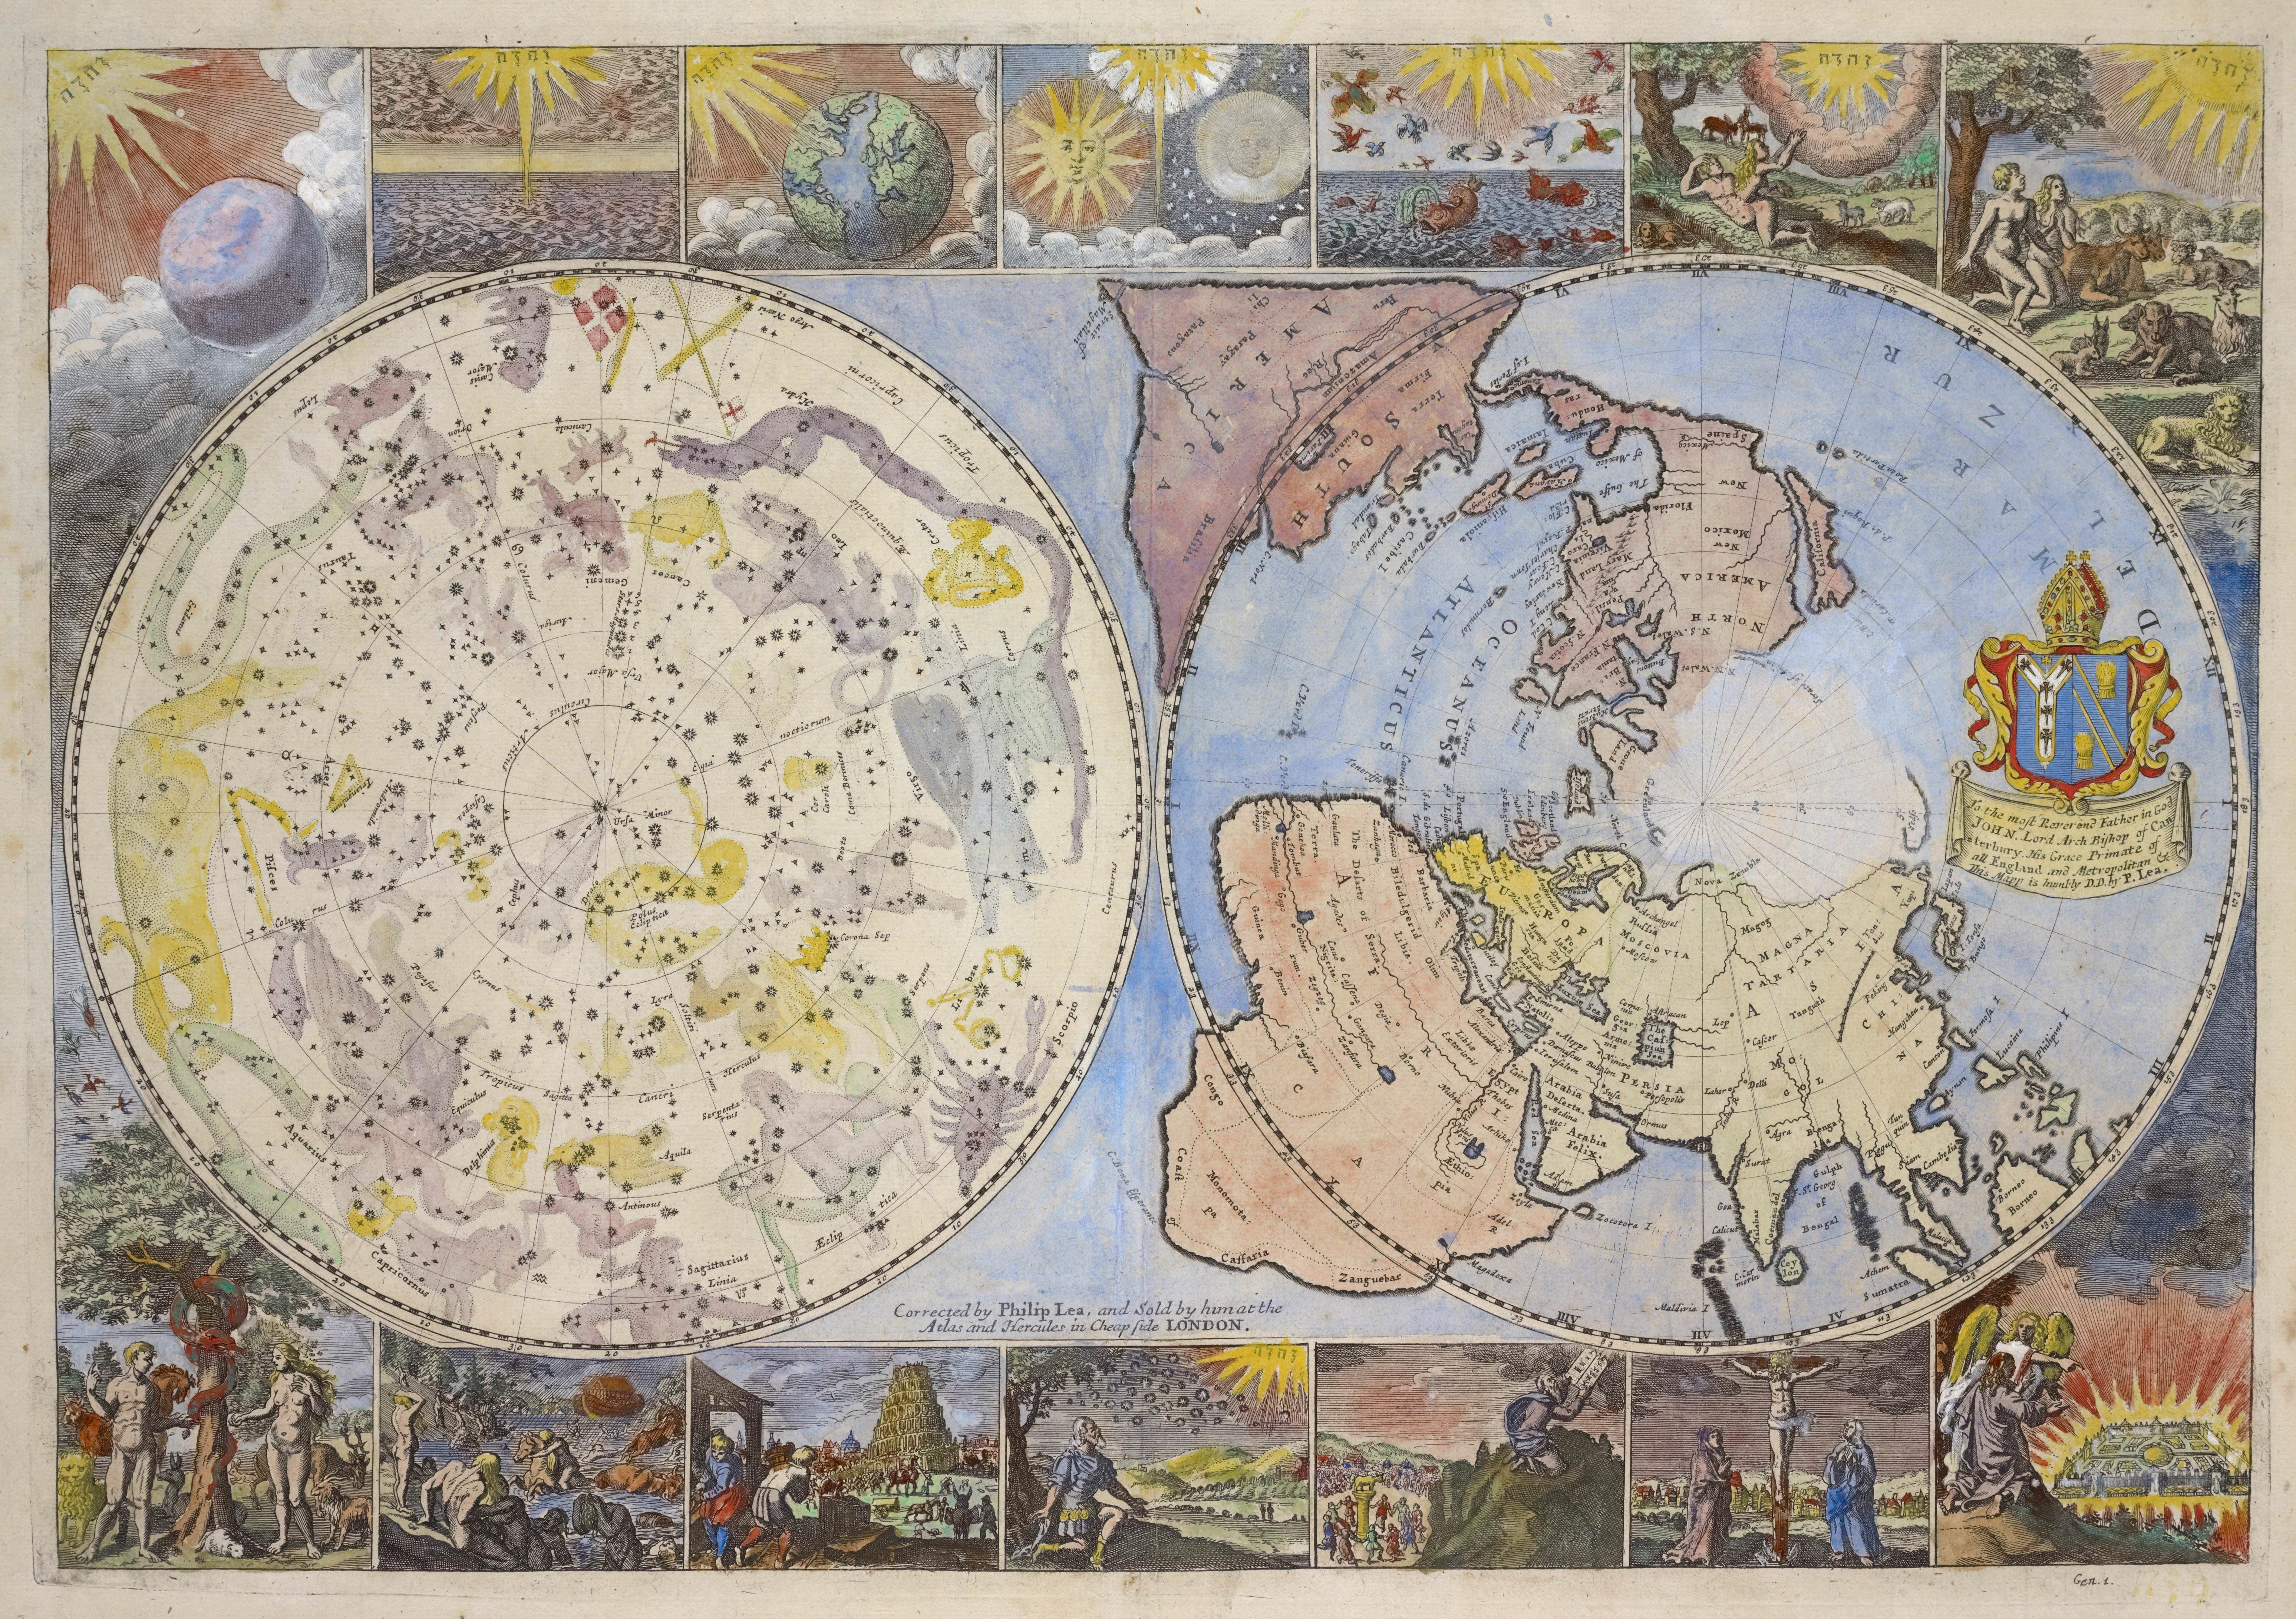 1699 map of the heavens and the